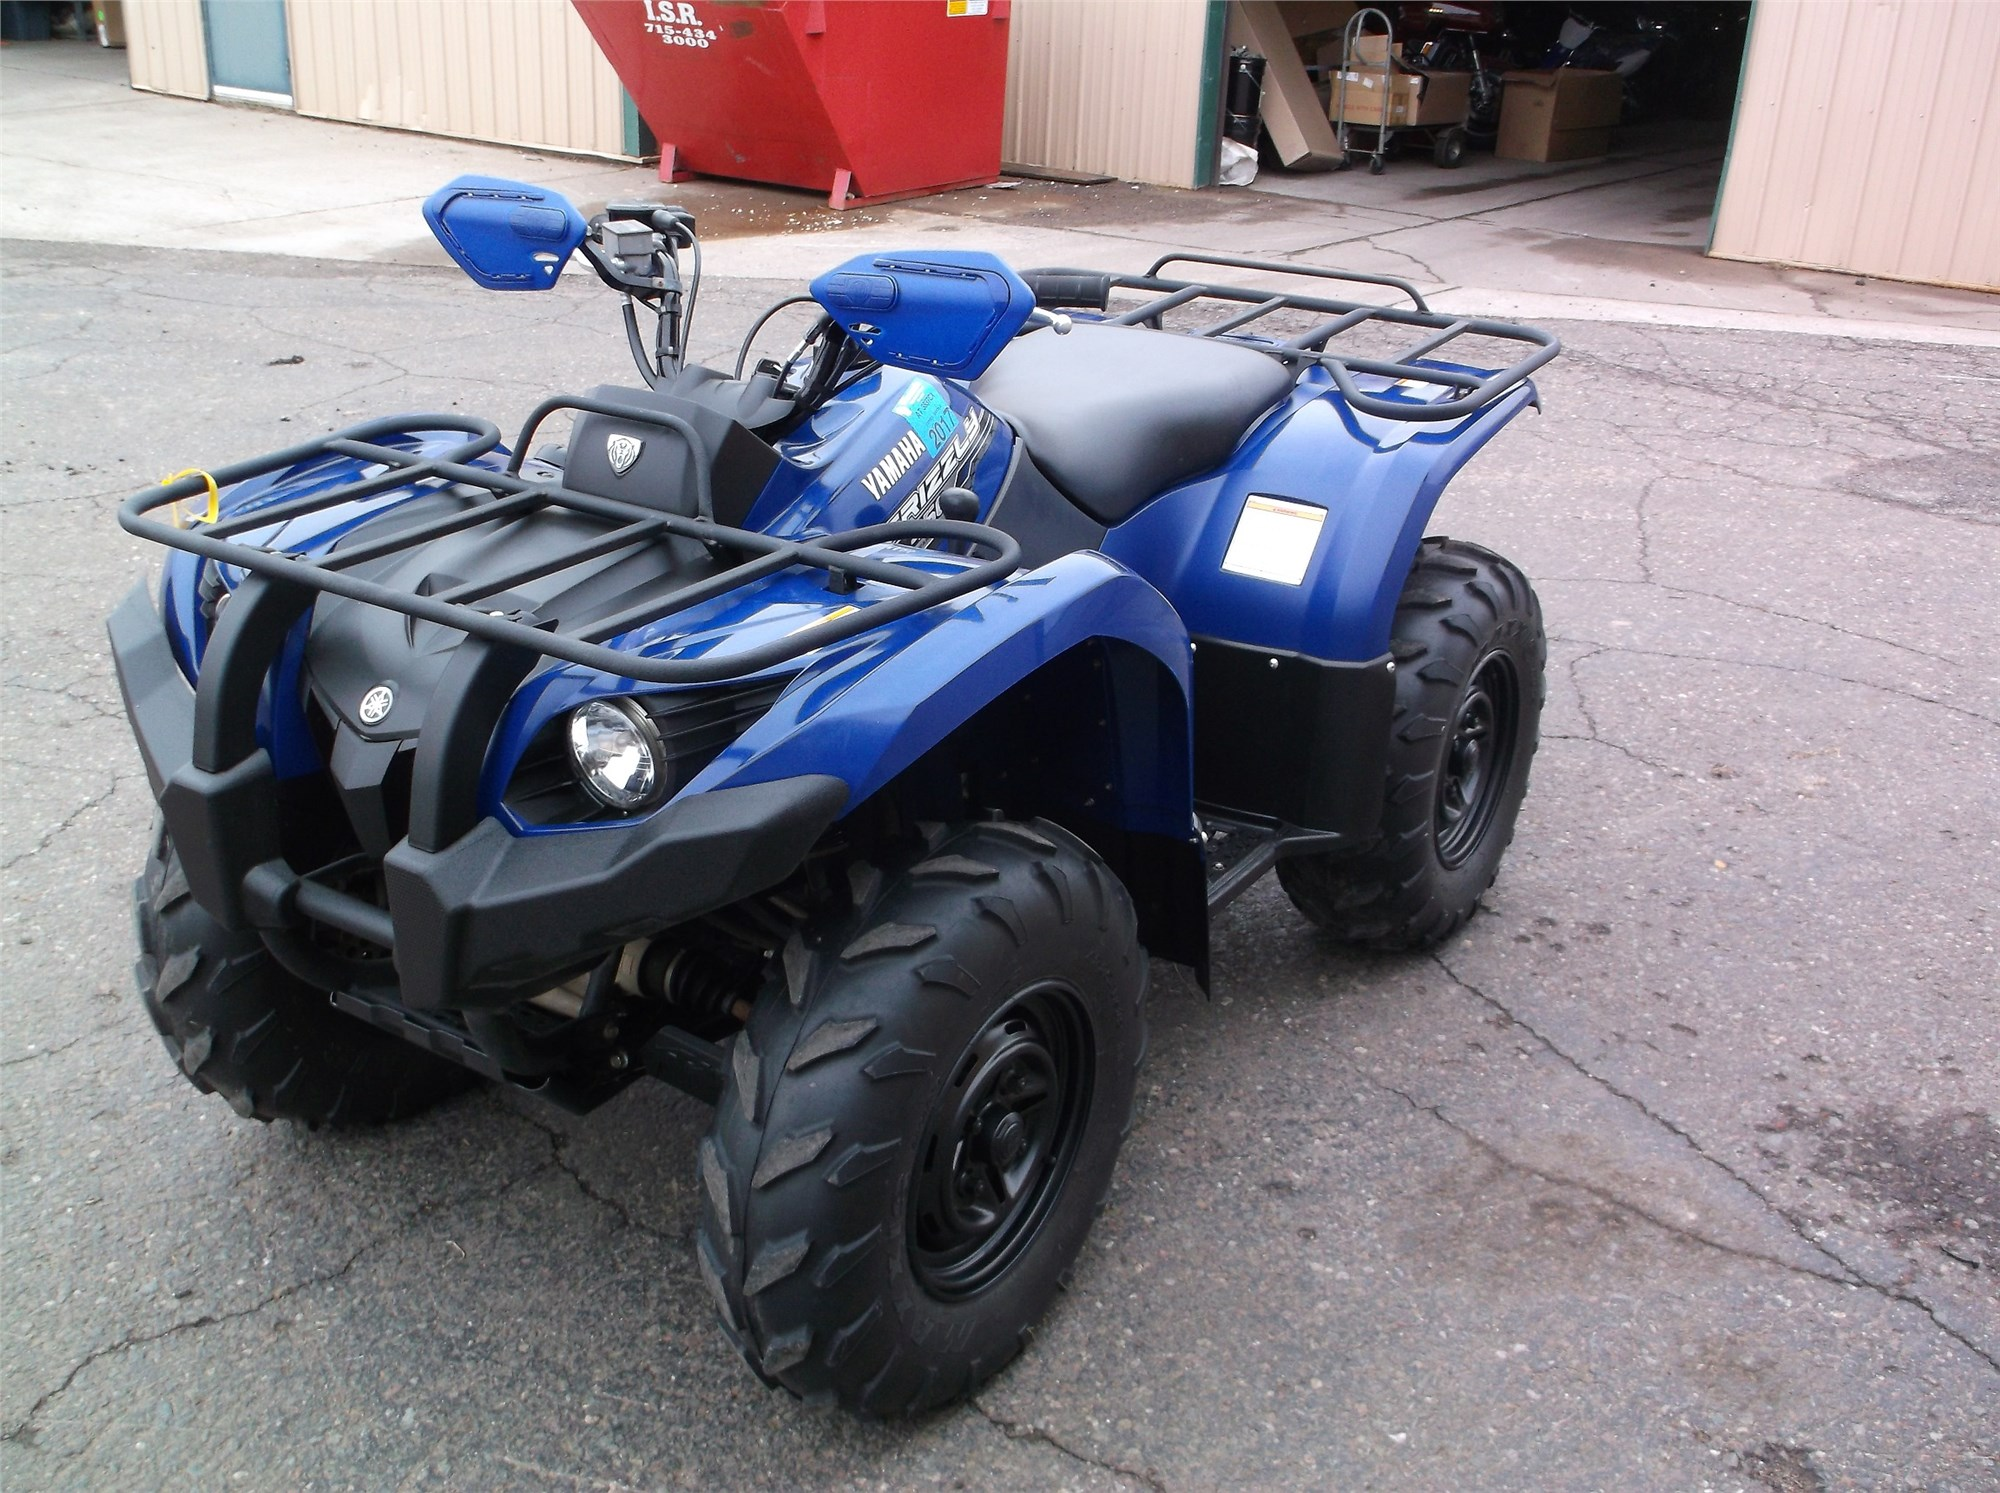 2014 yamaha grizzly 450 for sale at hauck powersports for Yamaha grizzly 450 for sale